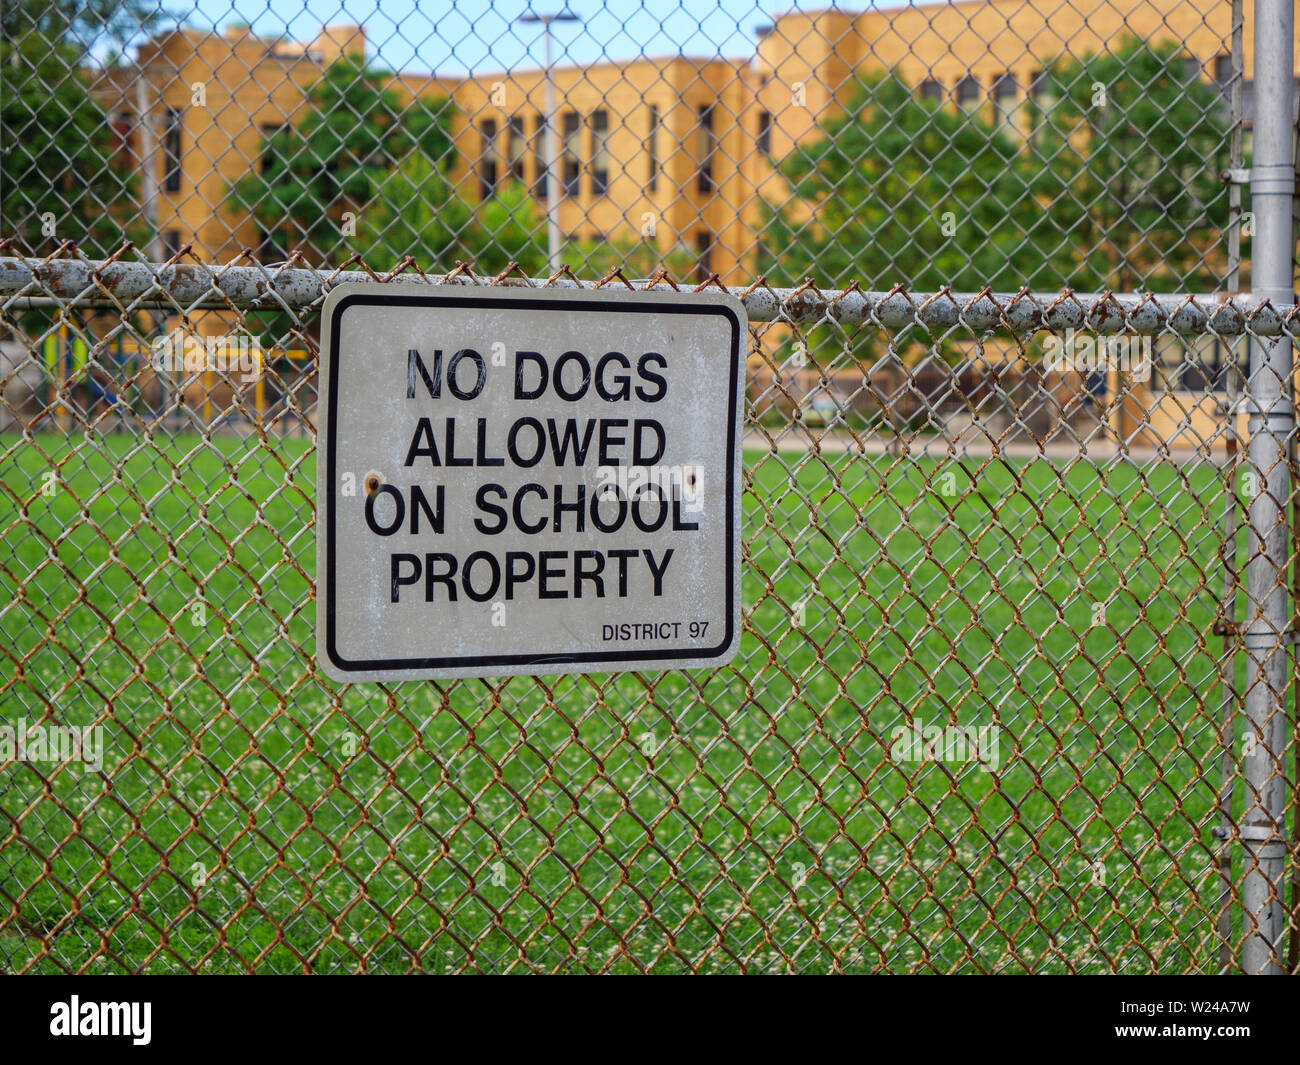 No dogs allowed on school property sign. Oak Park, Illinois. - Stock Image